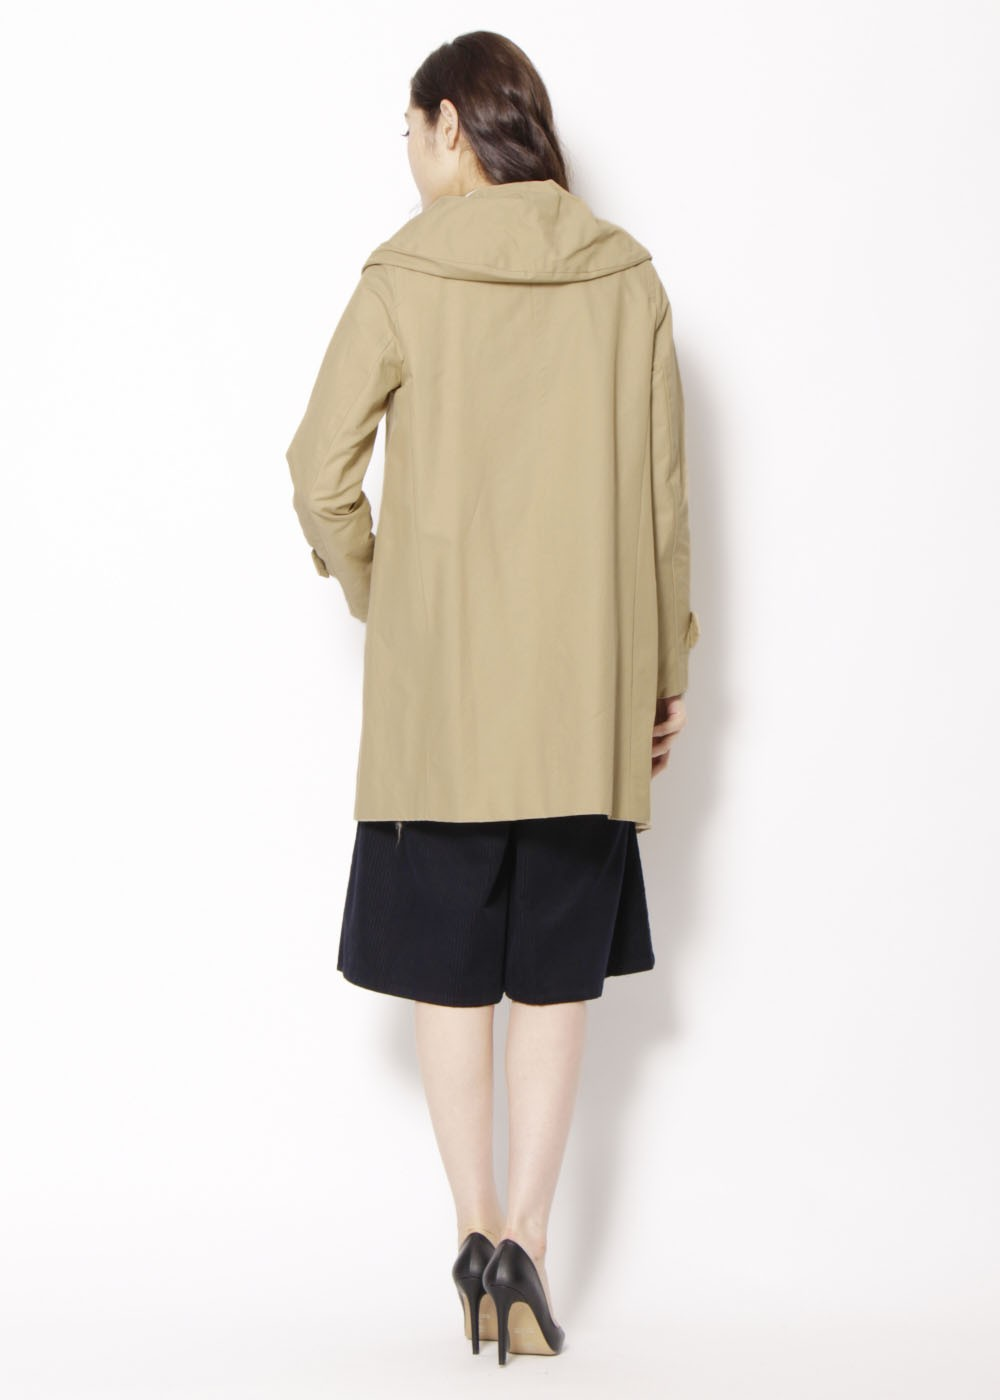 C/N フードコート|BEIGE|その他コート|URBAN RESEARCH warehouse Tops&Outer|最大80%OFF